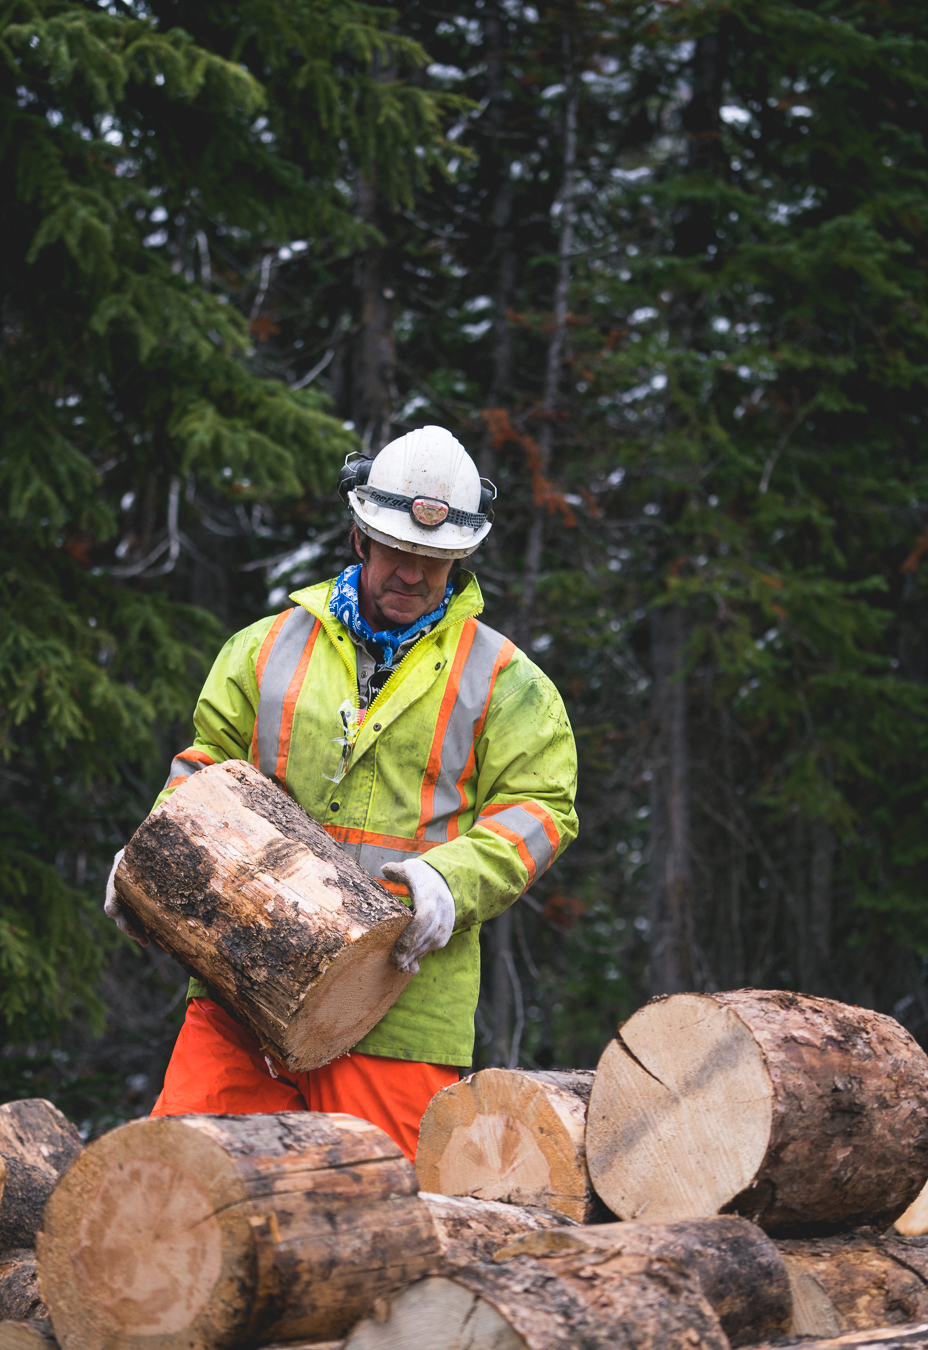 Septic cleanout crew piles wood to be flown into EP.